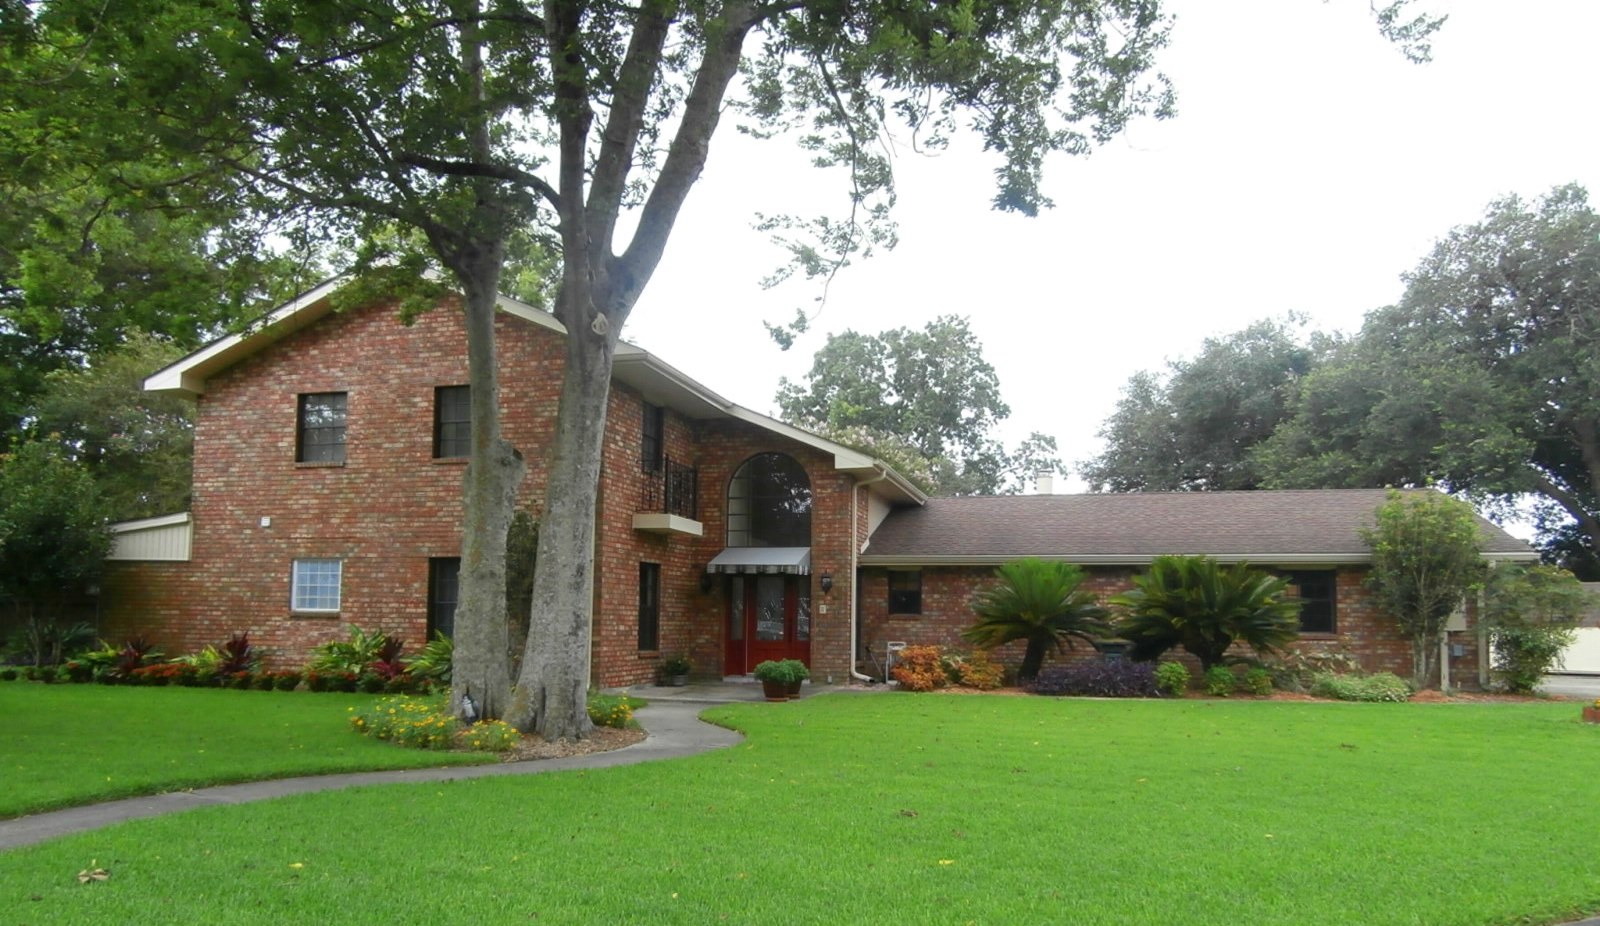 106 ROSE MANOR COURT, Belle Chasse, Louisiana 70037